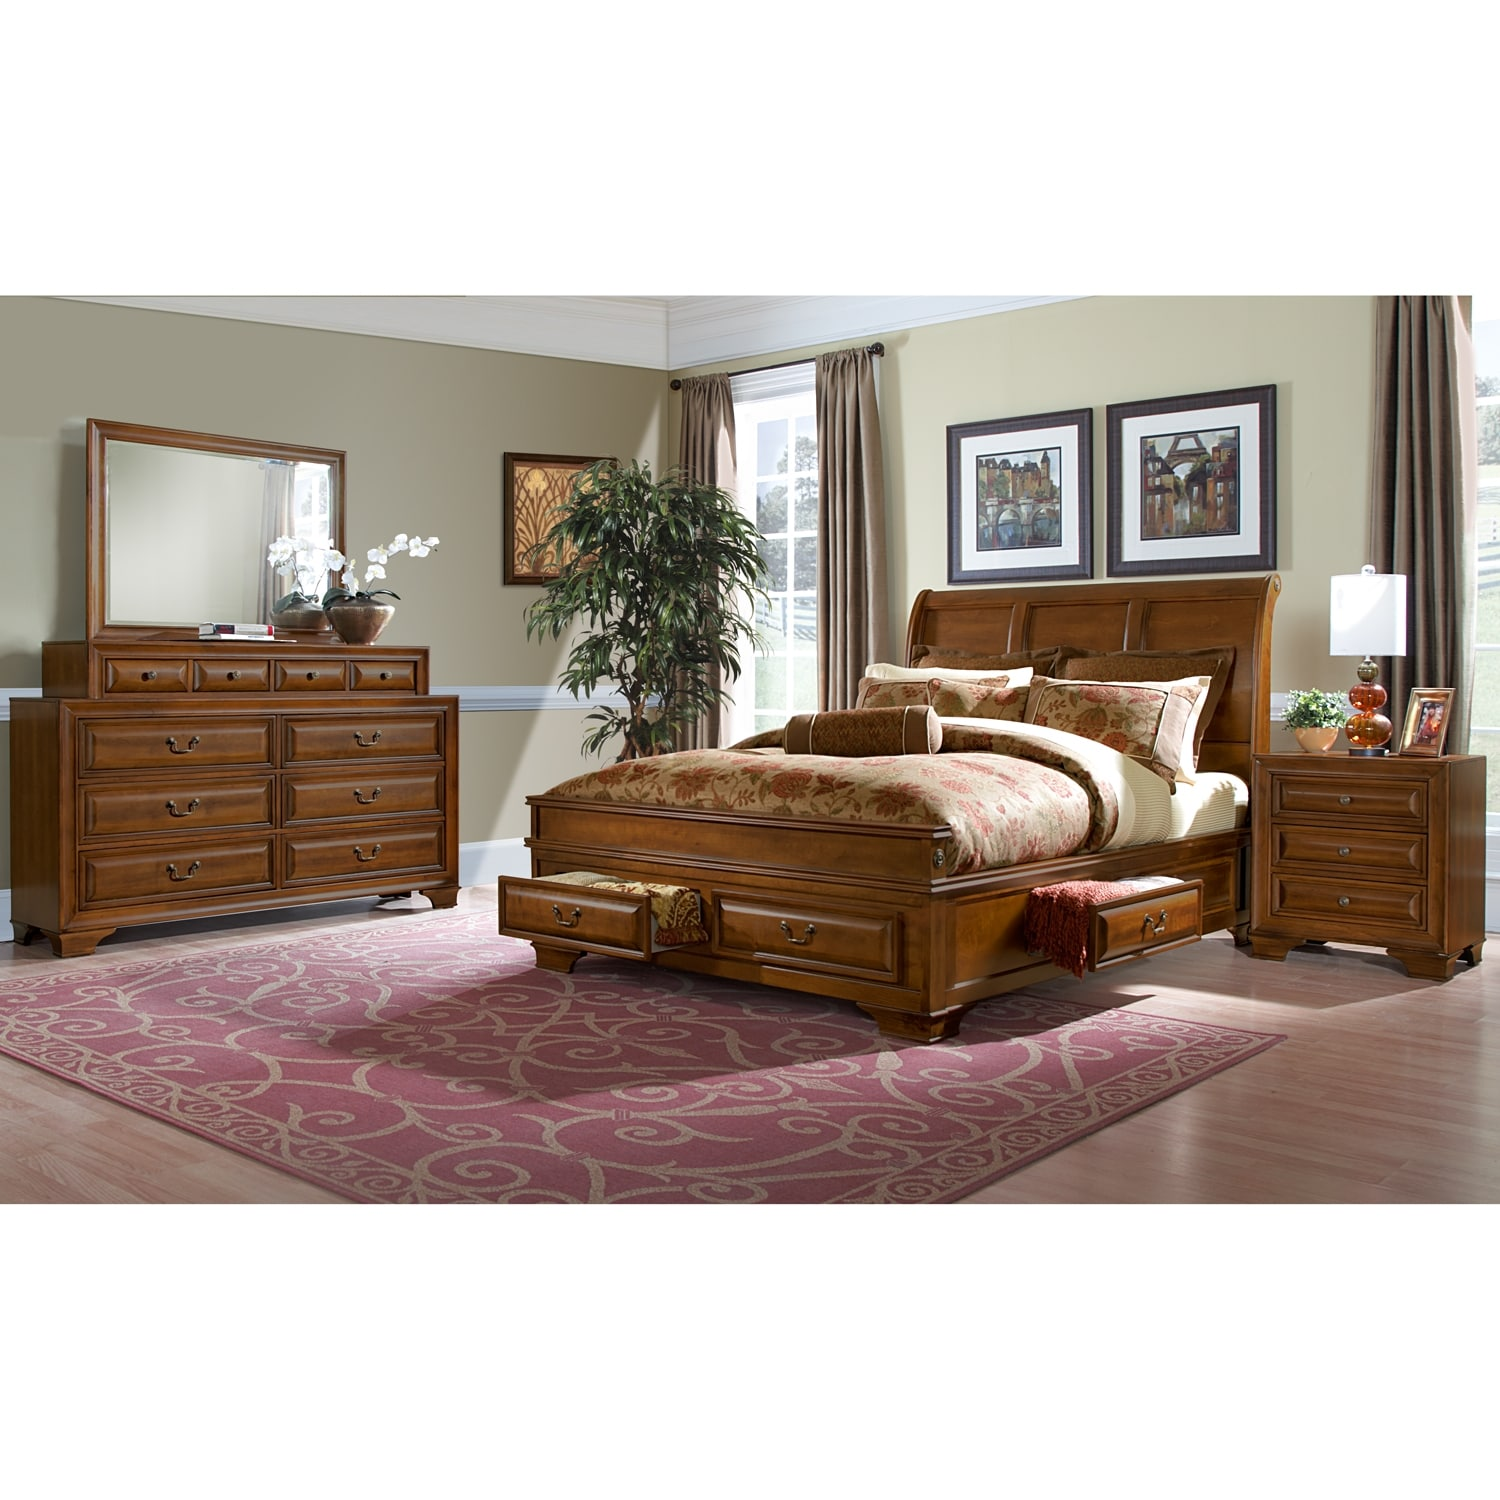 Storage Bedroom Furniture: Sanibelle 6-Piece King Storage Bedroom Set - Pine